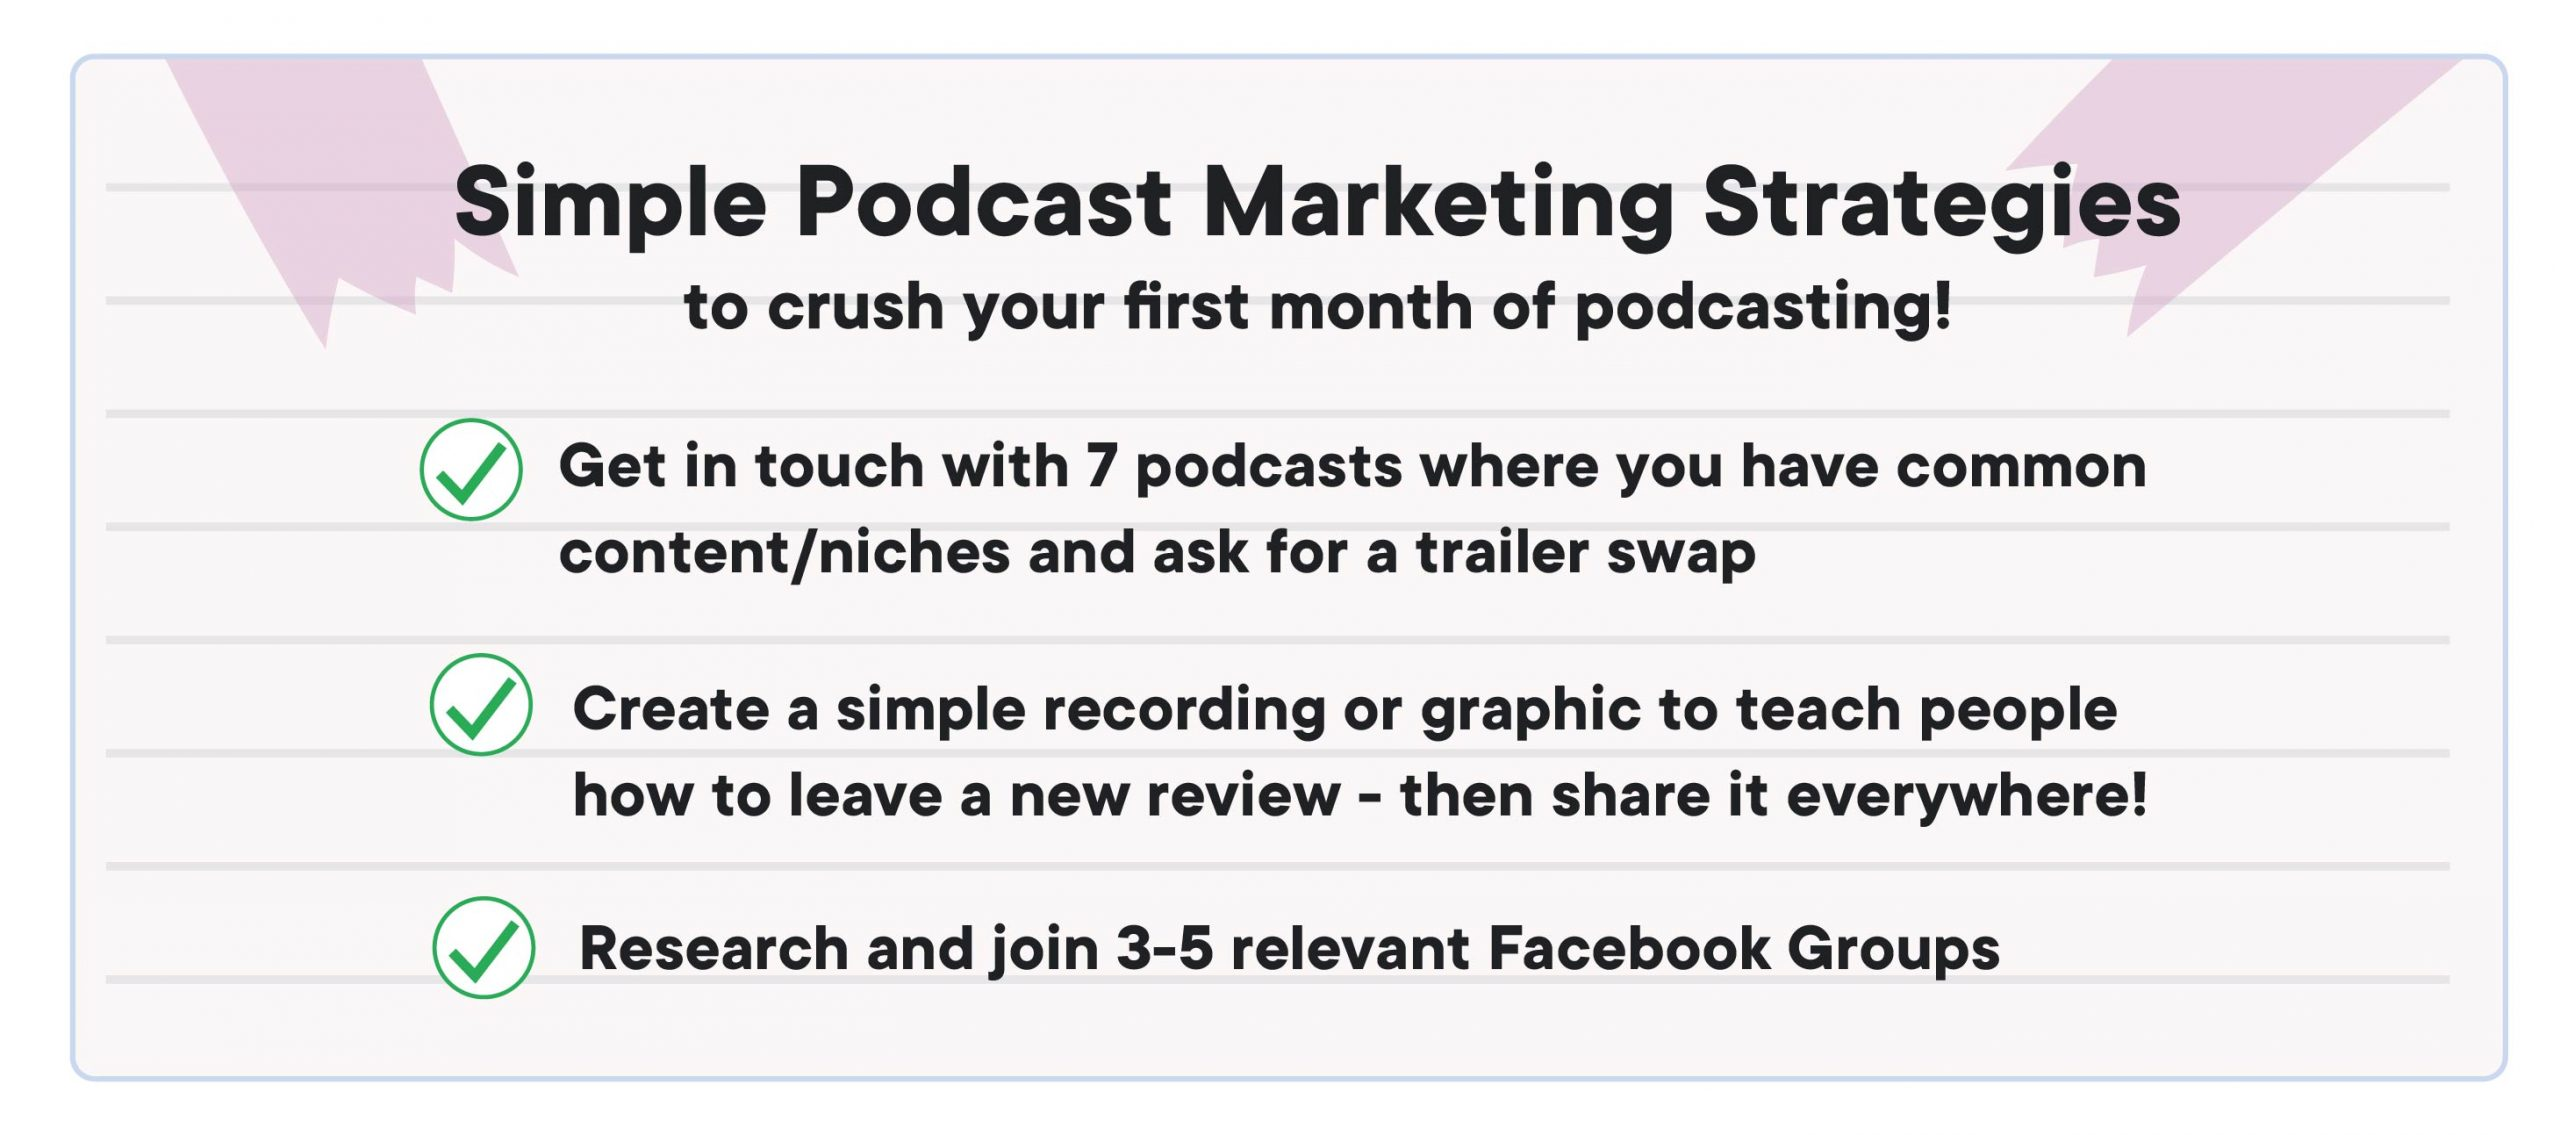 How to start a podcast: best simple marketing strategies for a new podcast. A tick list with 3 bullet points.